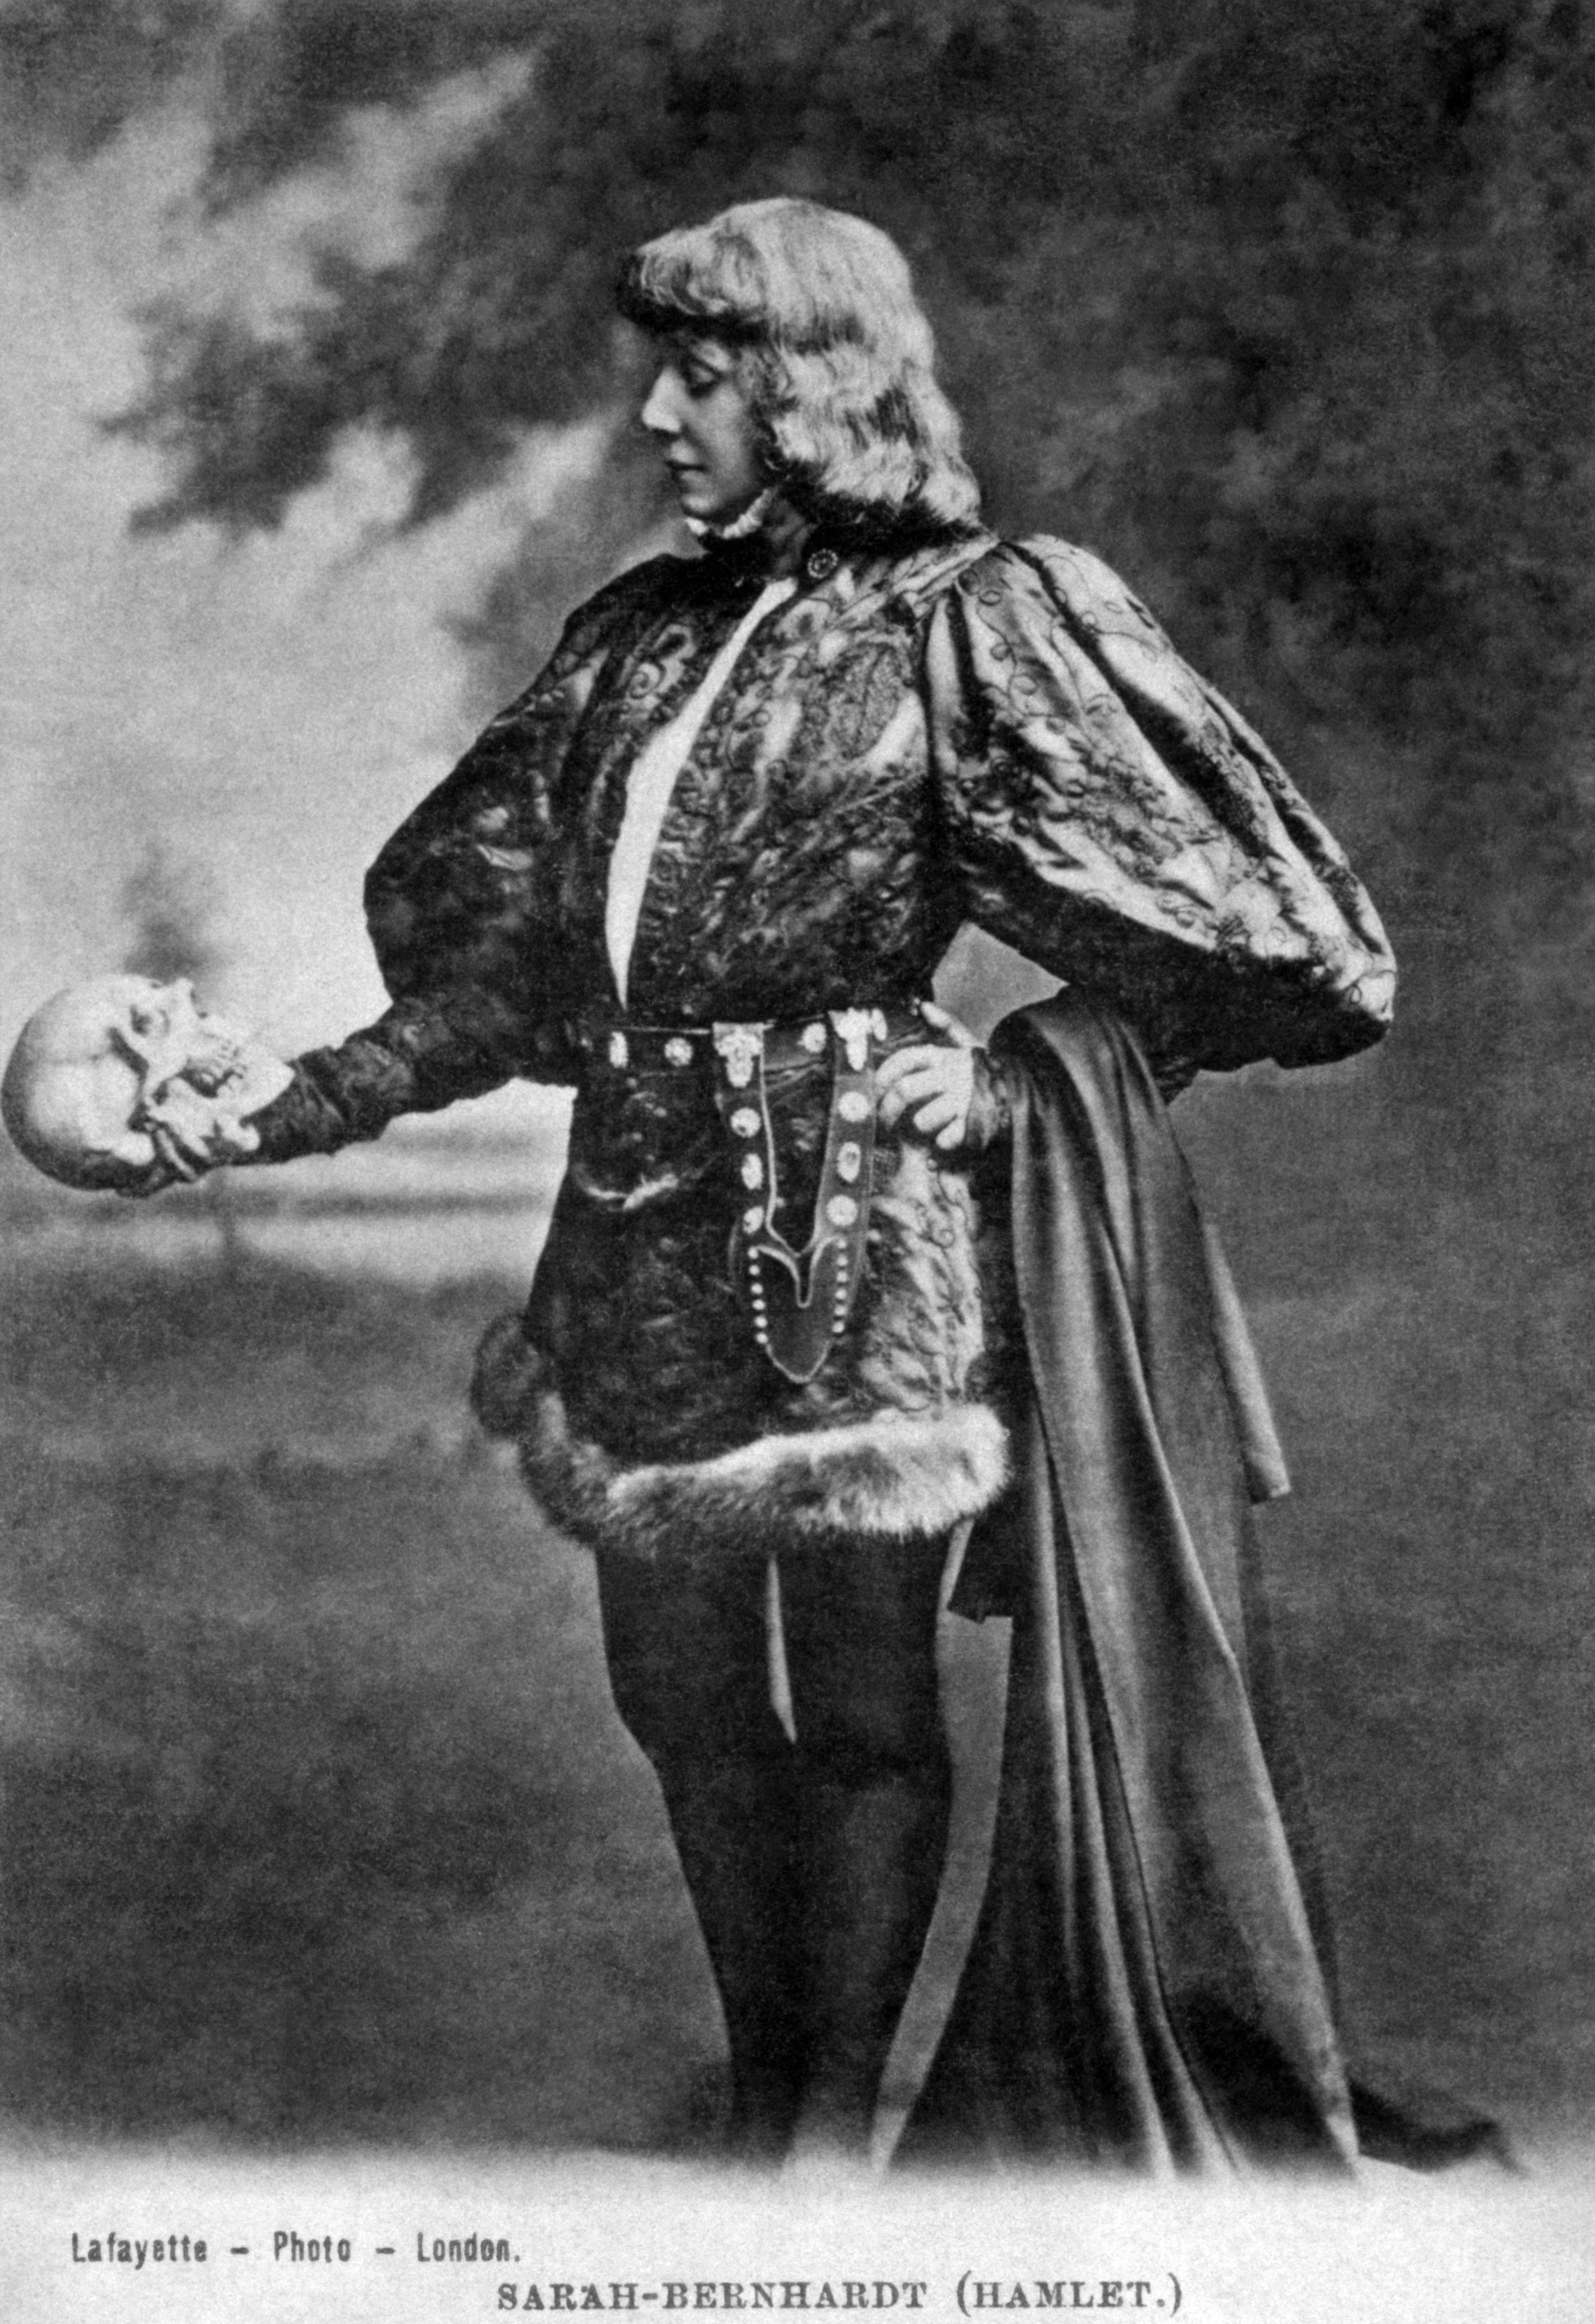 Sarah Bernhardt as Hamlet, with Yorick's skull (photographer: James Lafayette, c. 1885–1900).